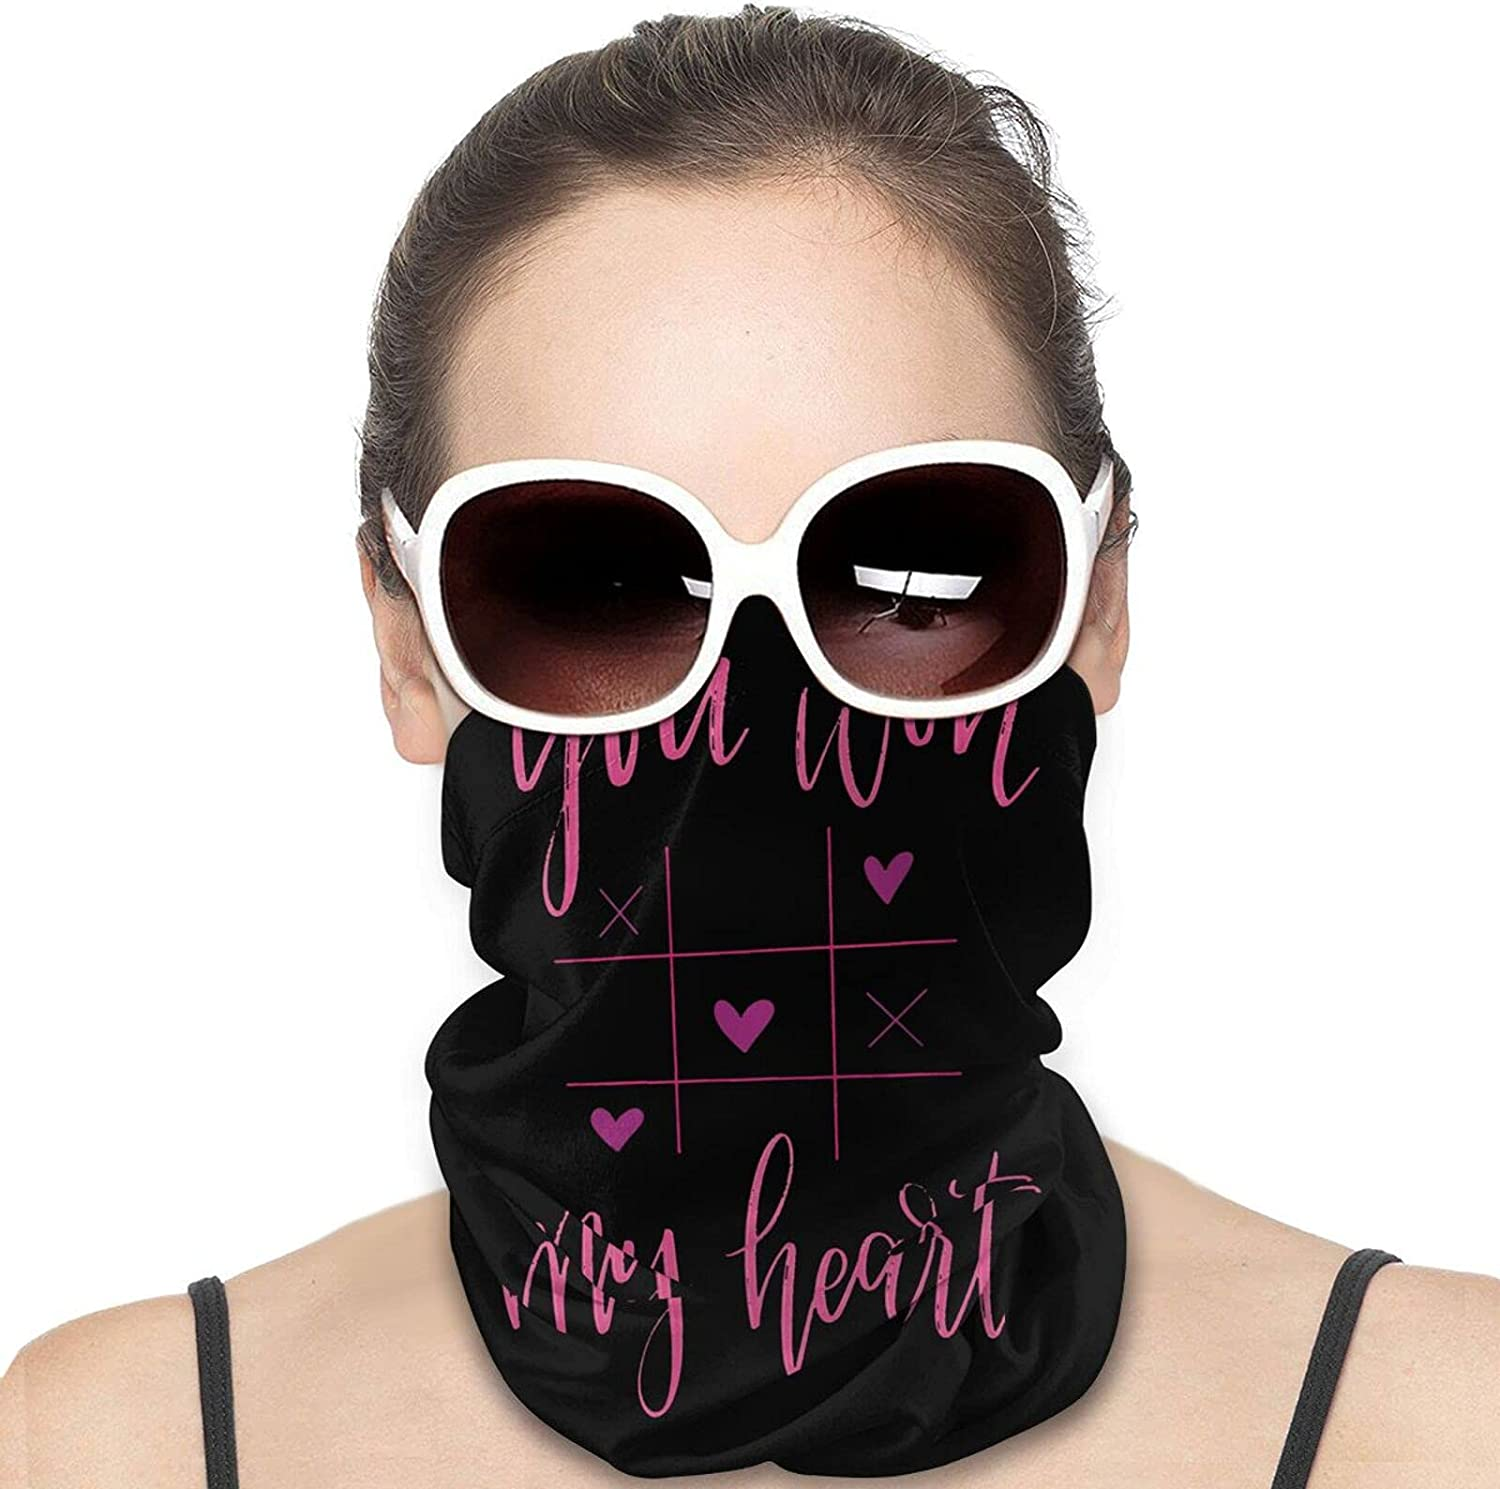 You WON MY HEART Round Neck Gaiter Bandnas Face Cover Uv Protection Prevent bask in Ice Scarf Headbands Perfect for Motorcycle Cycling Running Festival Raves Outdoors